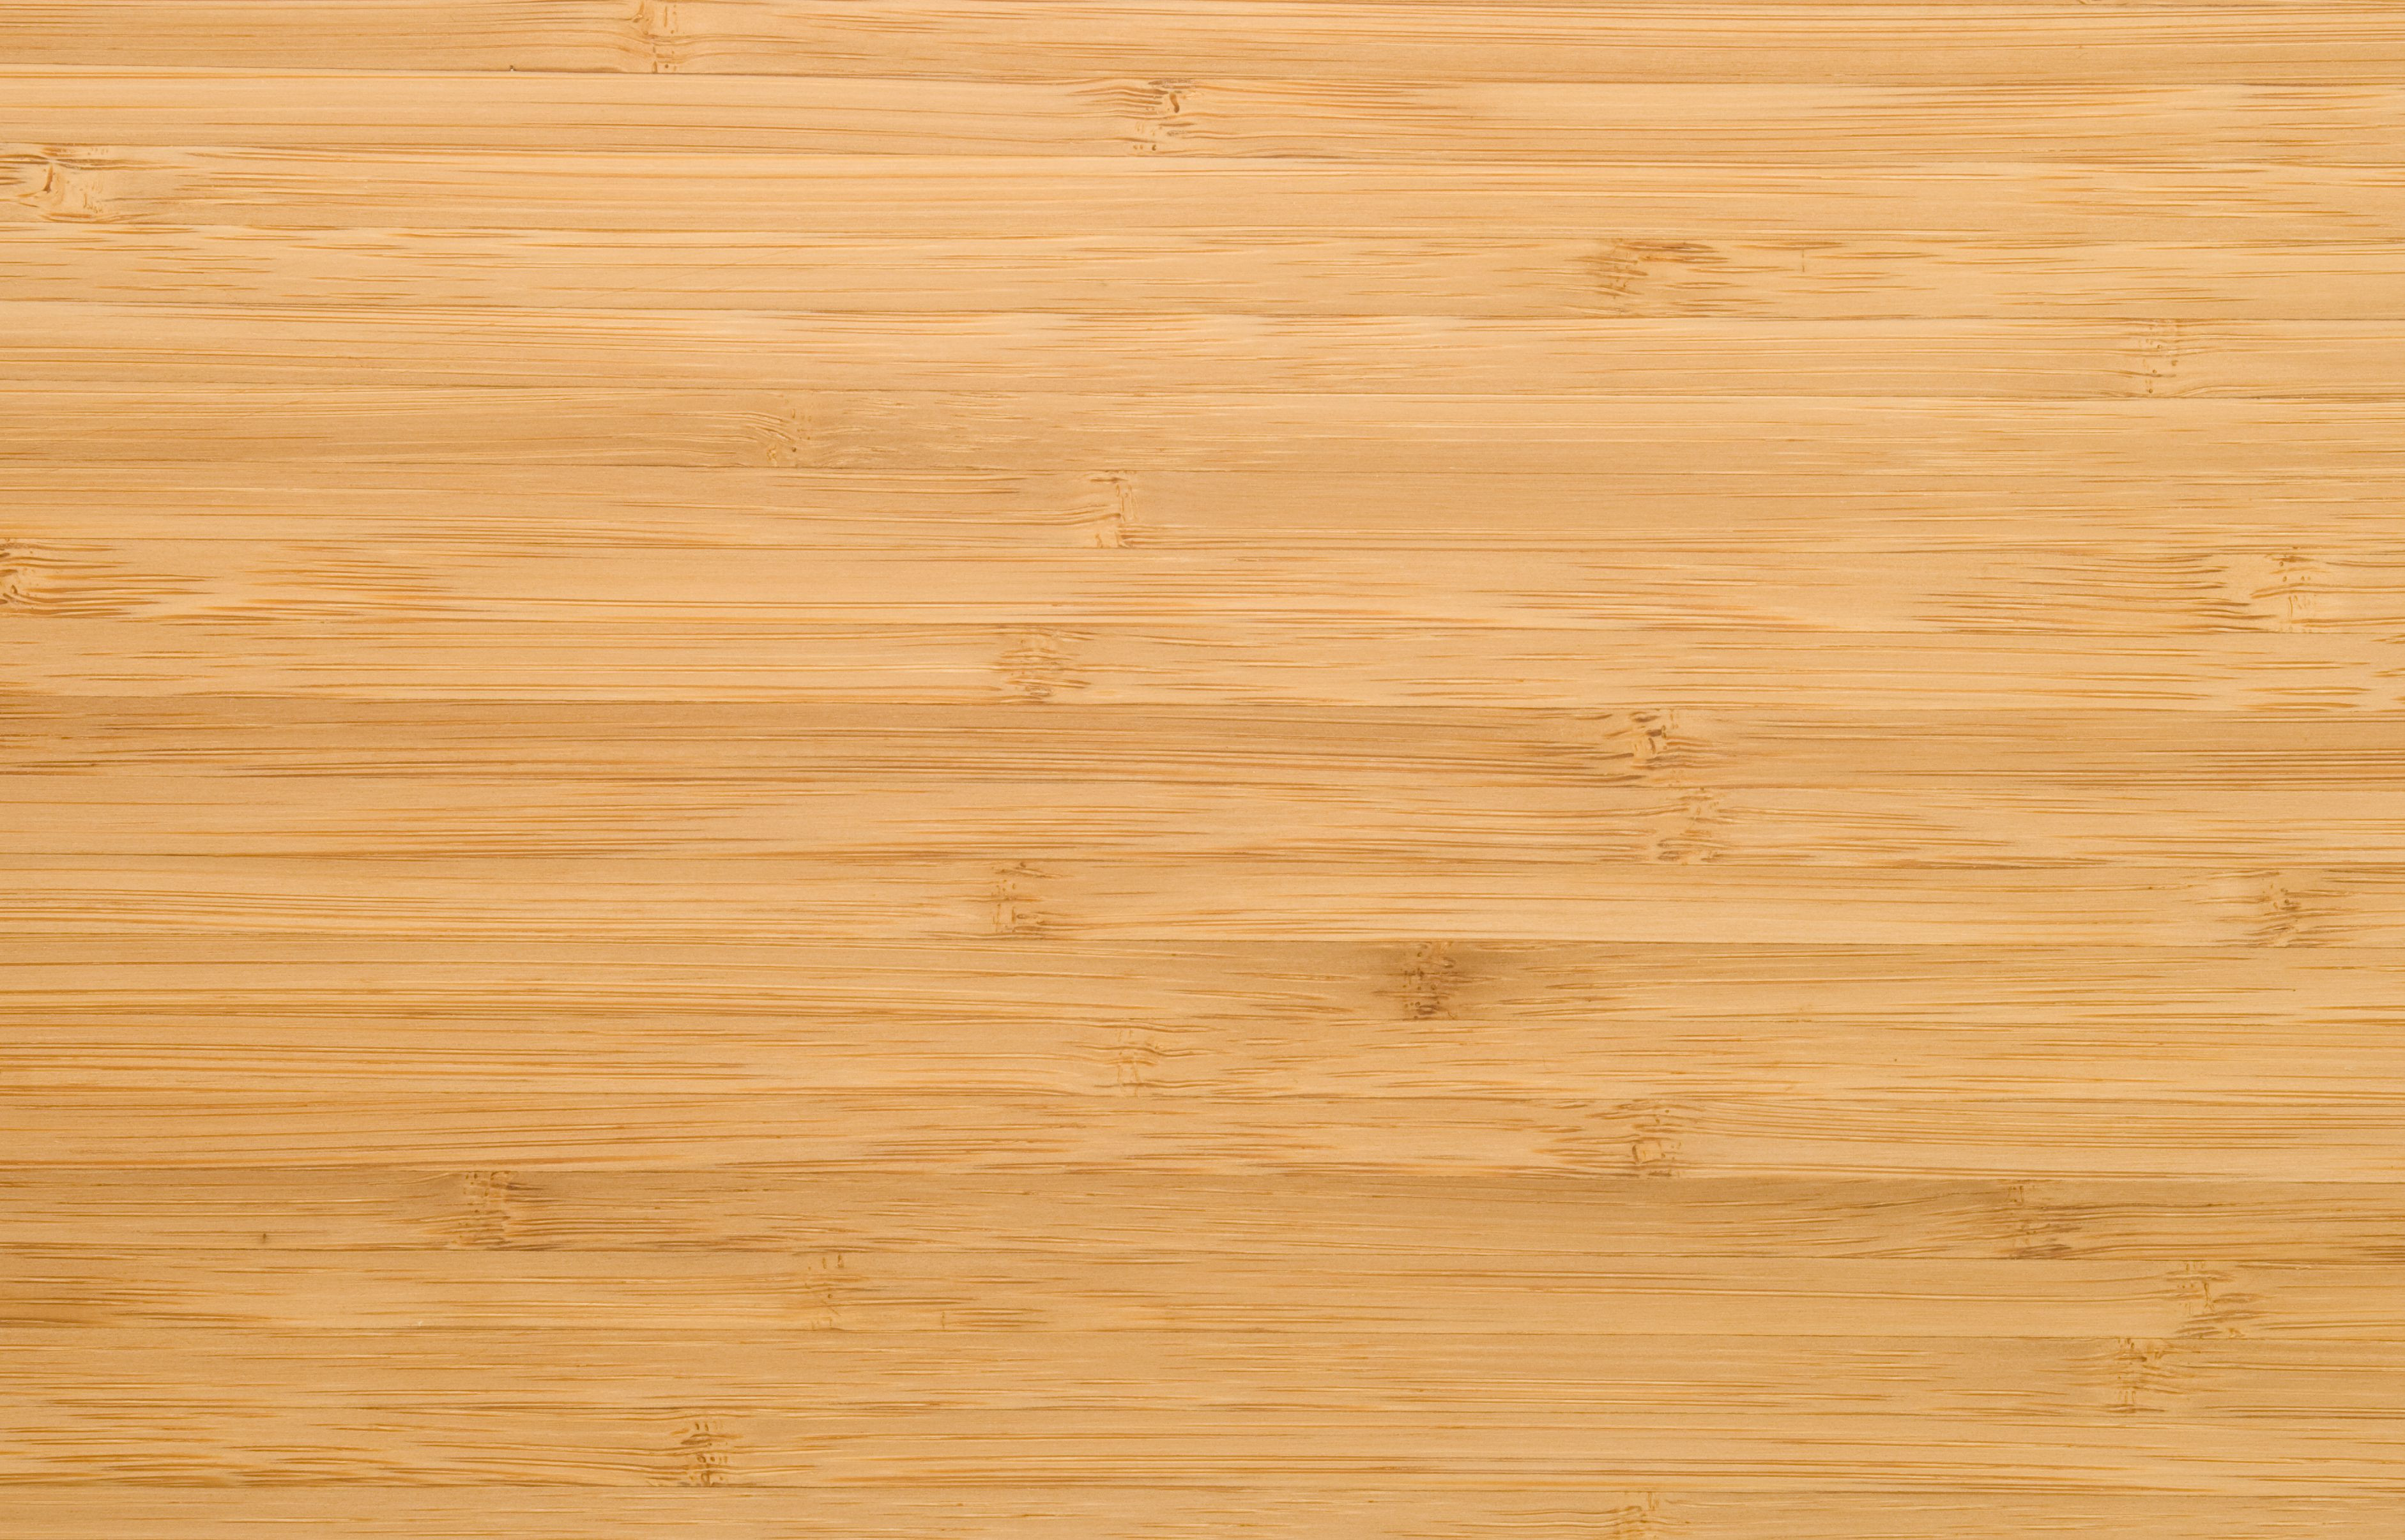 hardwood floor refinishing livonia mi of can you use a wet mop on bamboo floors inside natural bamboo plank 94259870 59aeefd4519de20010d5c648